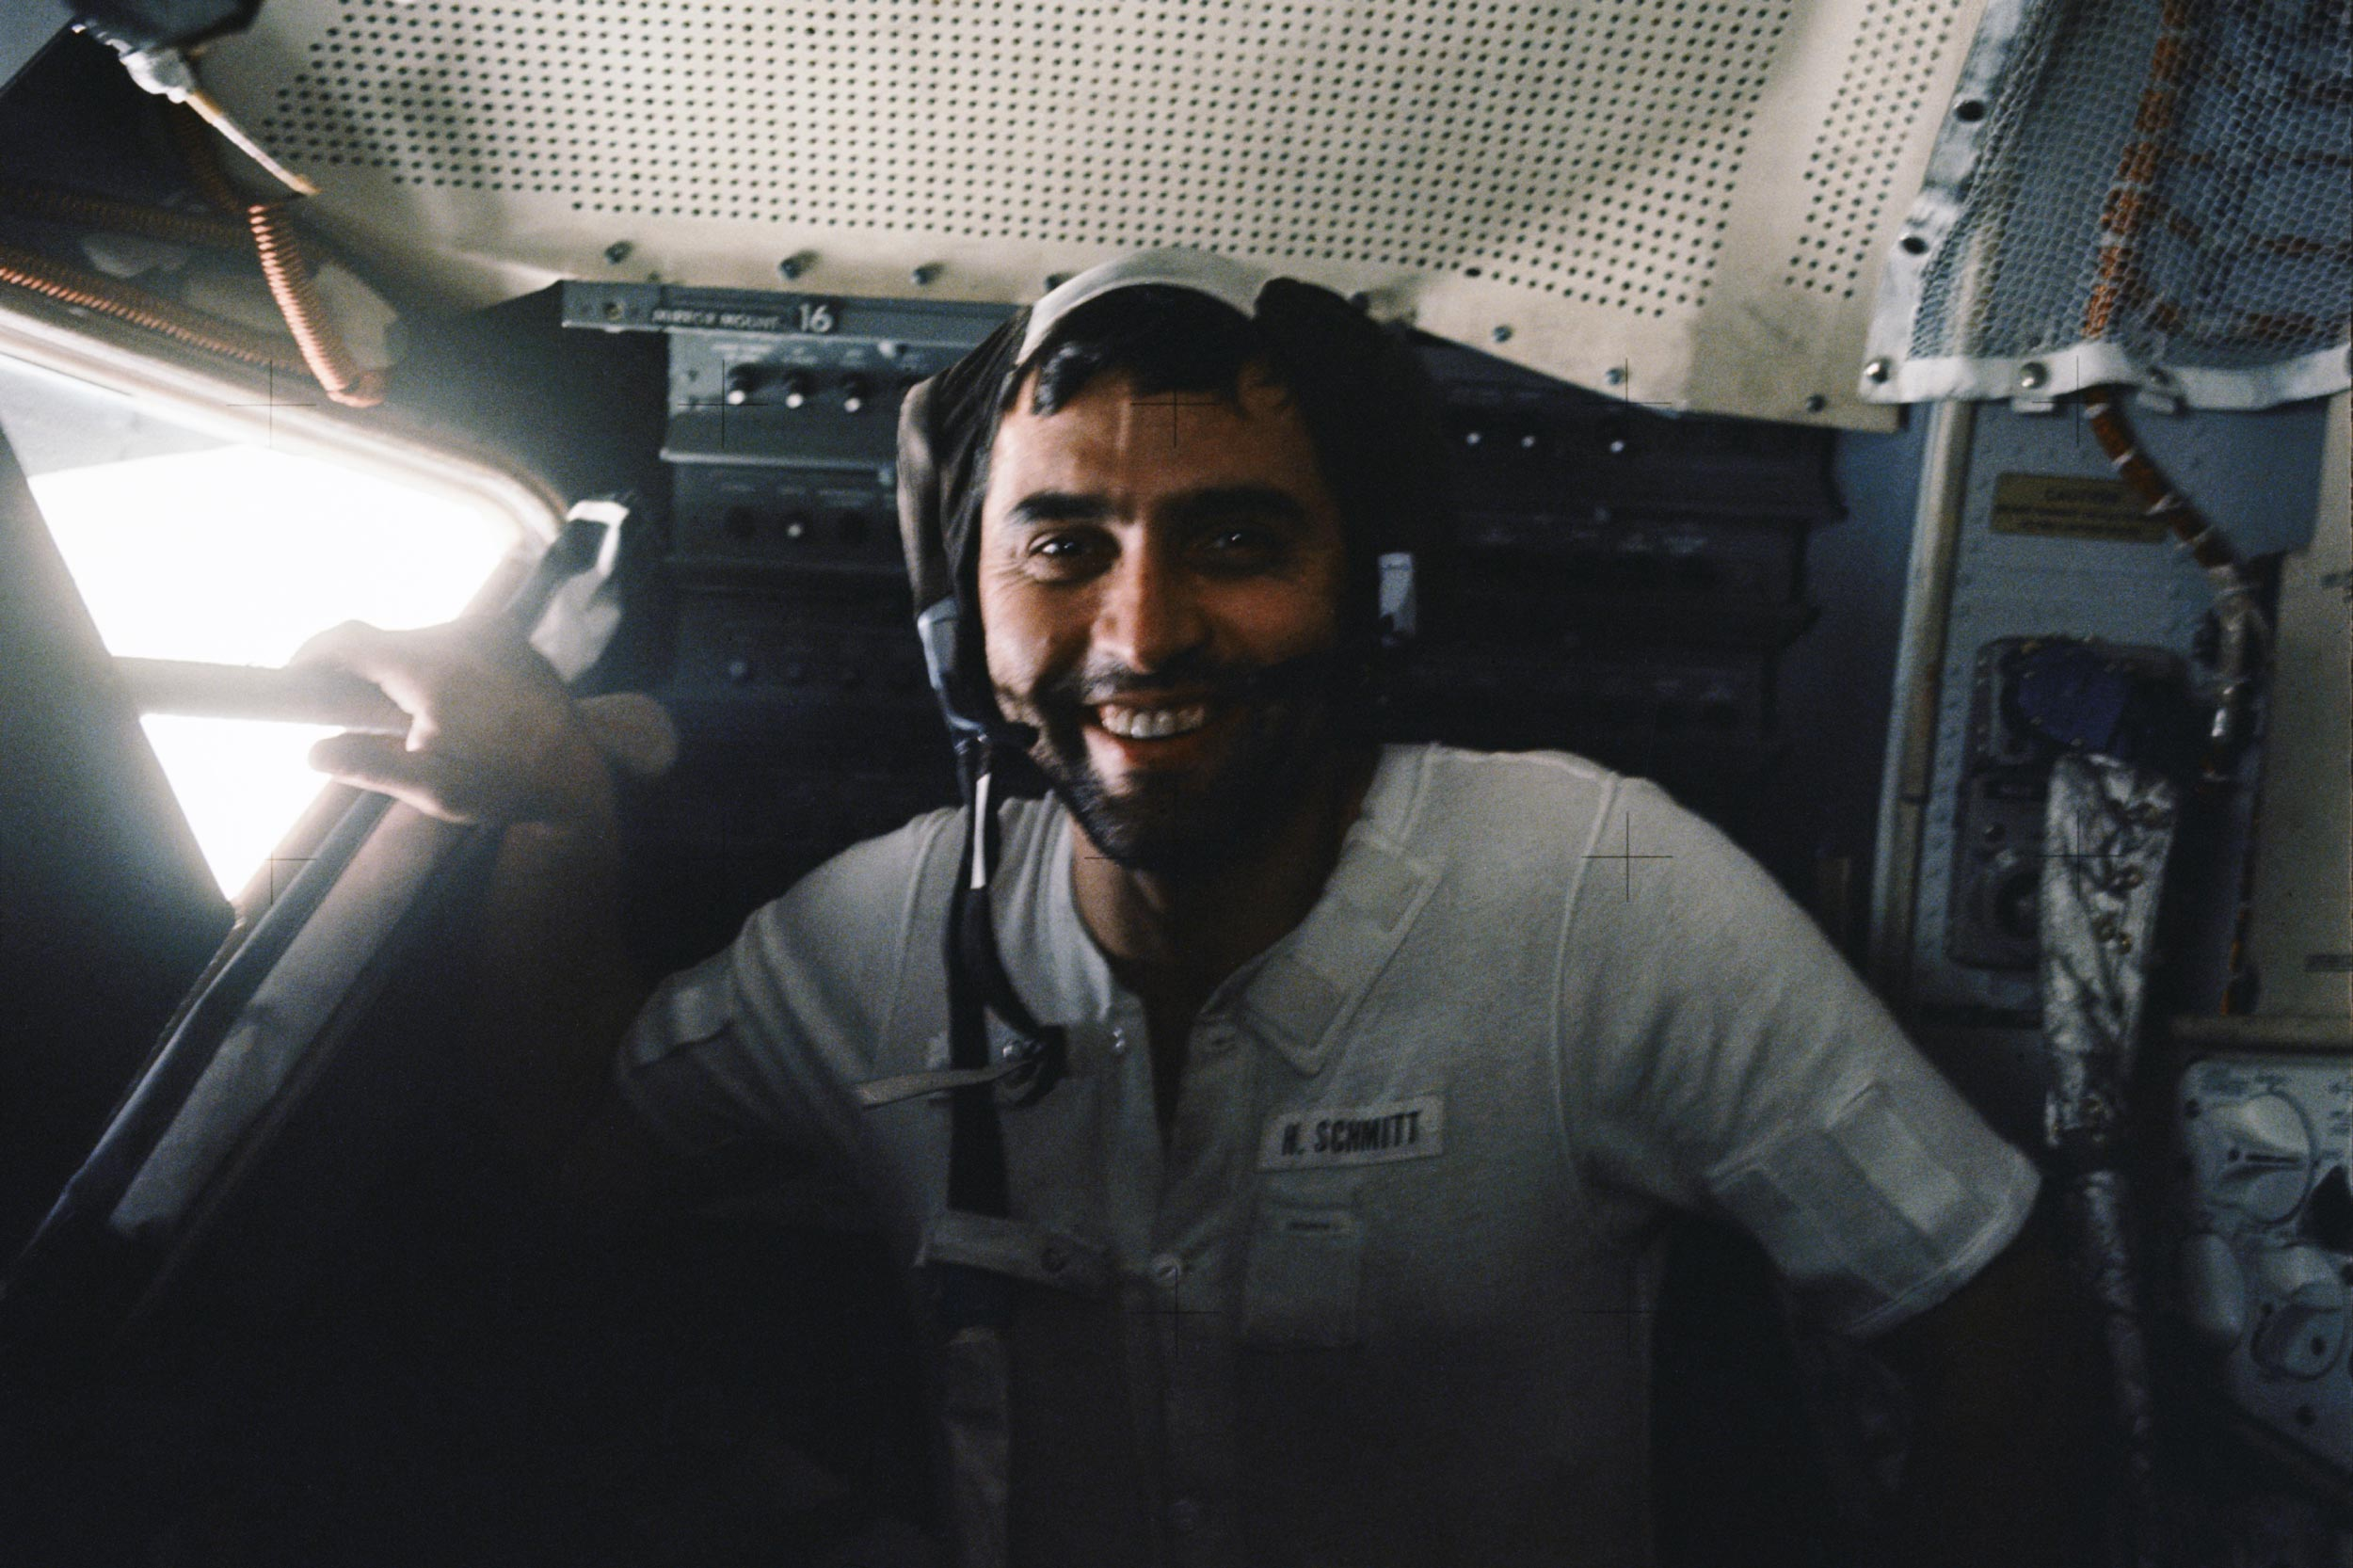 """Apollo 17 astronaut Harrison H. """"Jack"""" Schmitt is photographed inside the lunar module following the third extravehicular activity of his mission. (NASA photo)"""